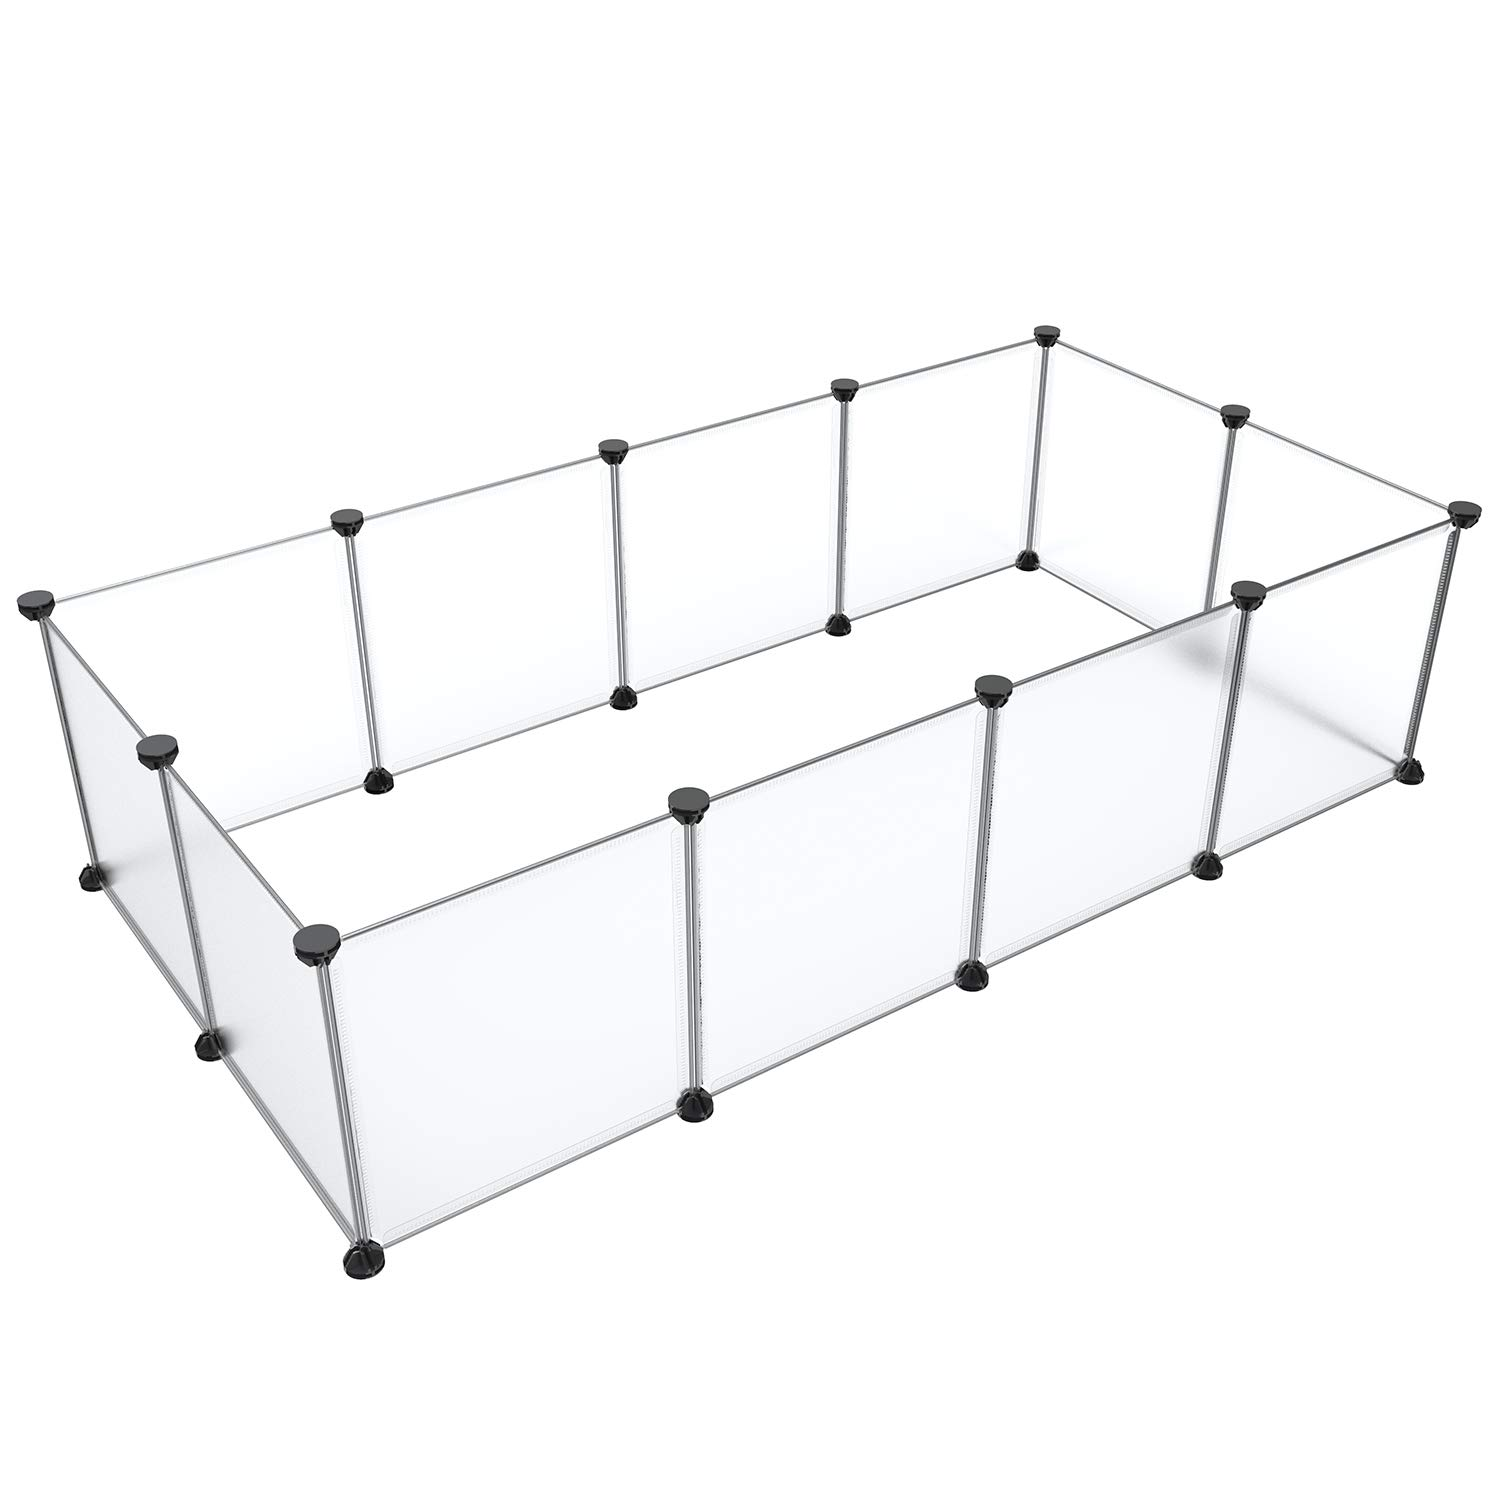 12 Panels Frosted White Tespo Pet Playpen Animal Fence Cage DIY Exercise Pen Crate Kennel Hutch for Small Animals, Bunny, Rabbit, Puppy & Guinea Pigs, Indoor Upgrade 12 Panels (Frosted White)